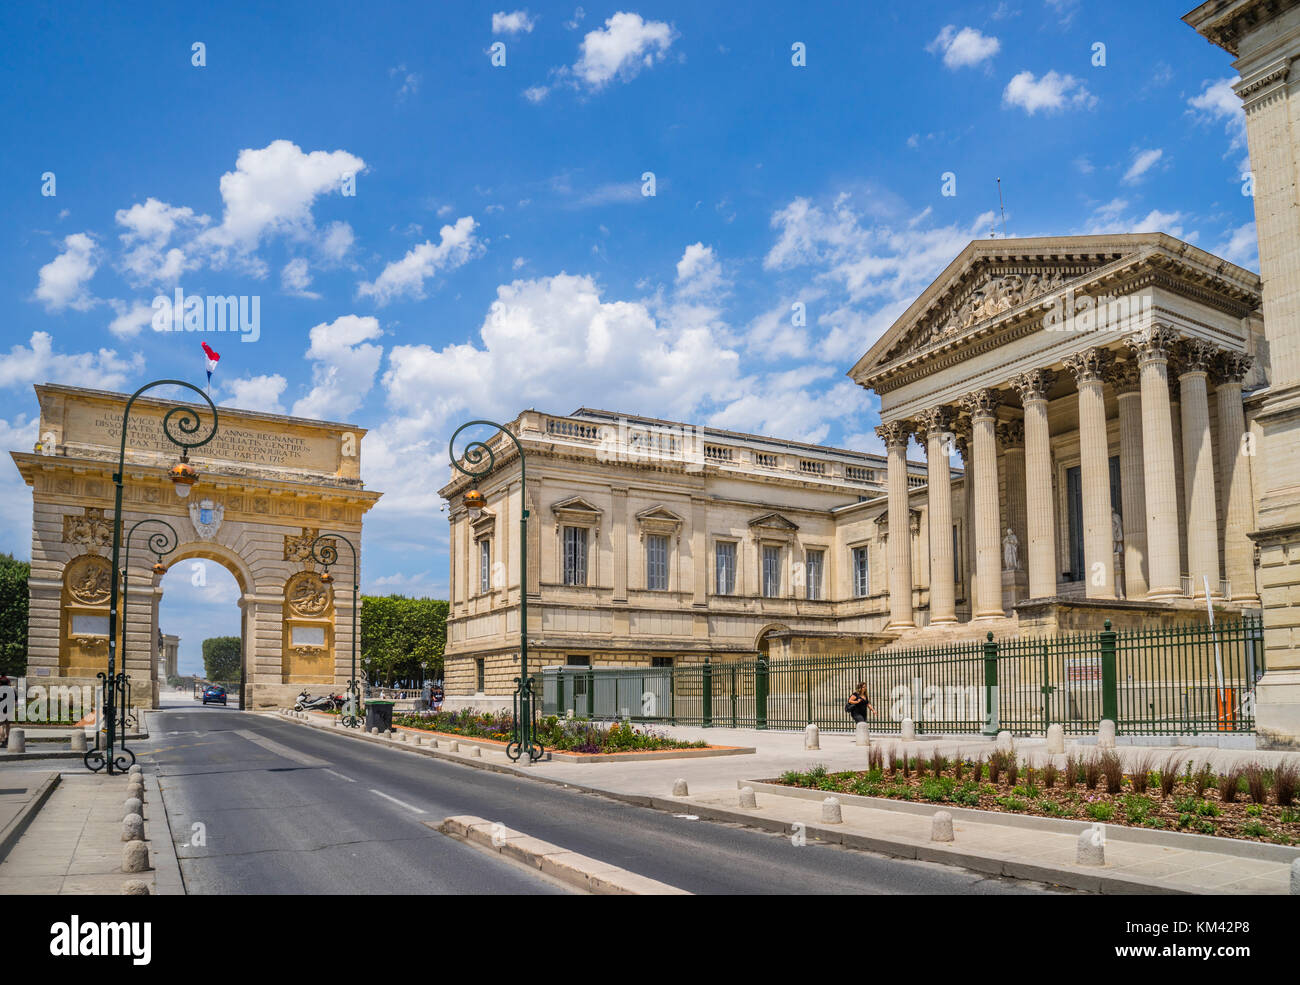 France, Hérault department, Montpellier, Rue Foch, view of the triumphal arch of Porte du Peyrou and the Court - Stock Image